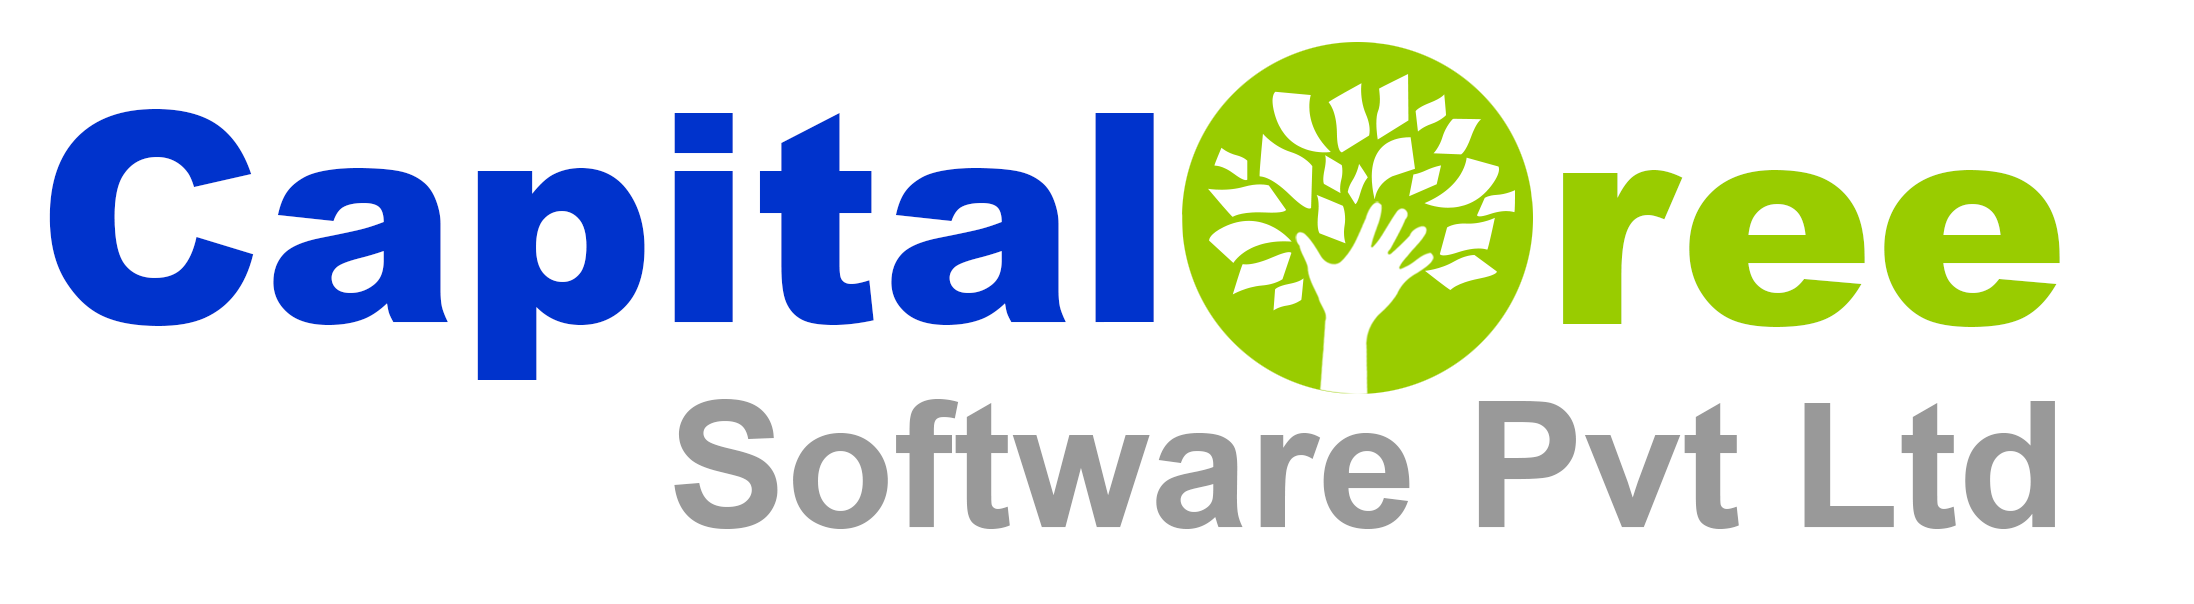 CAPITALTREE SOFTWARE Ltd - Web Development company logo